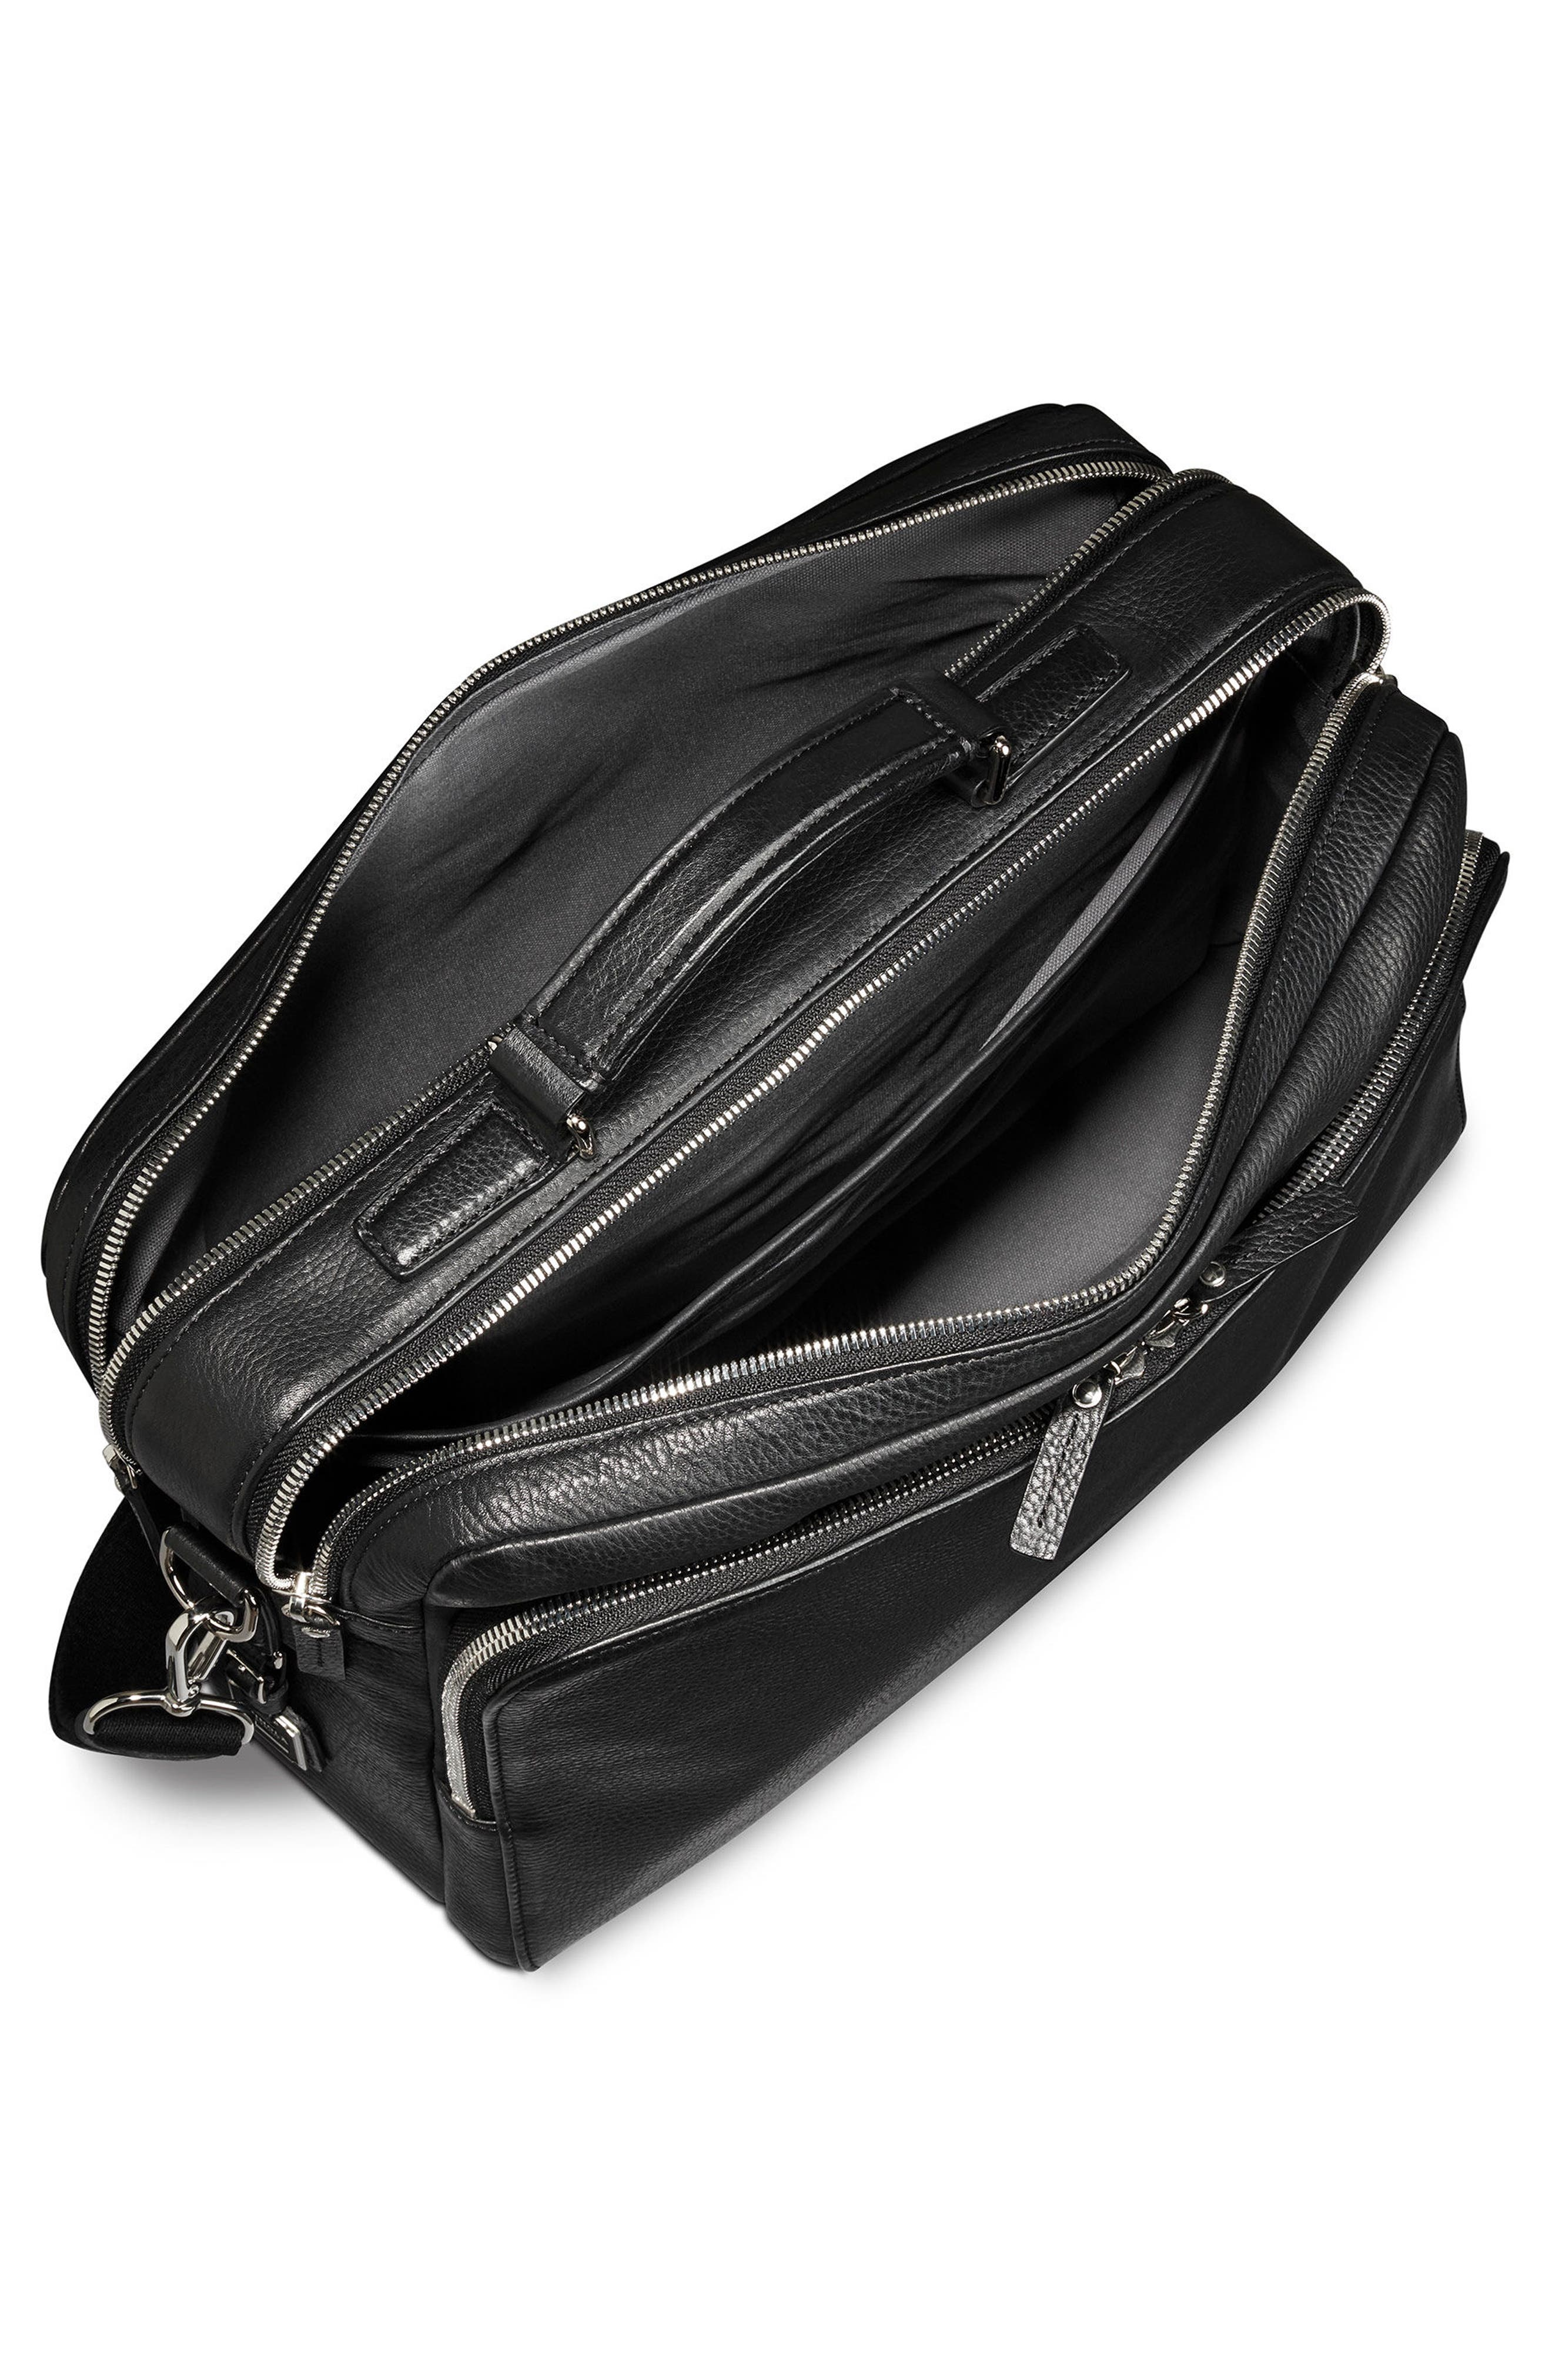 Canfield Briefcase,                             Alternate thumbnail 3, color,                             Black